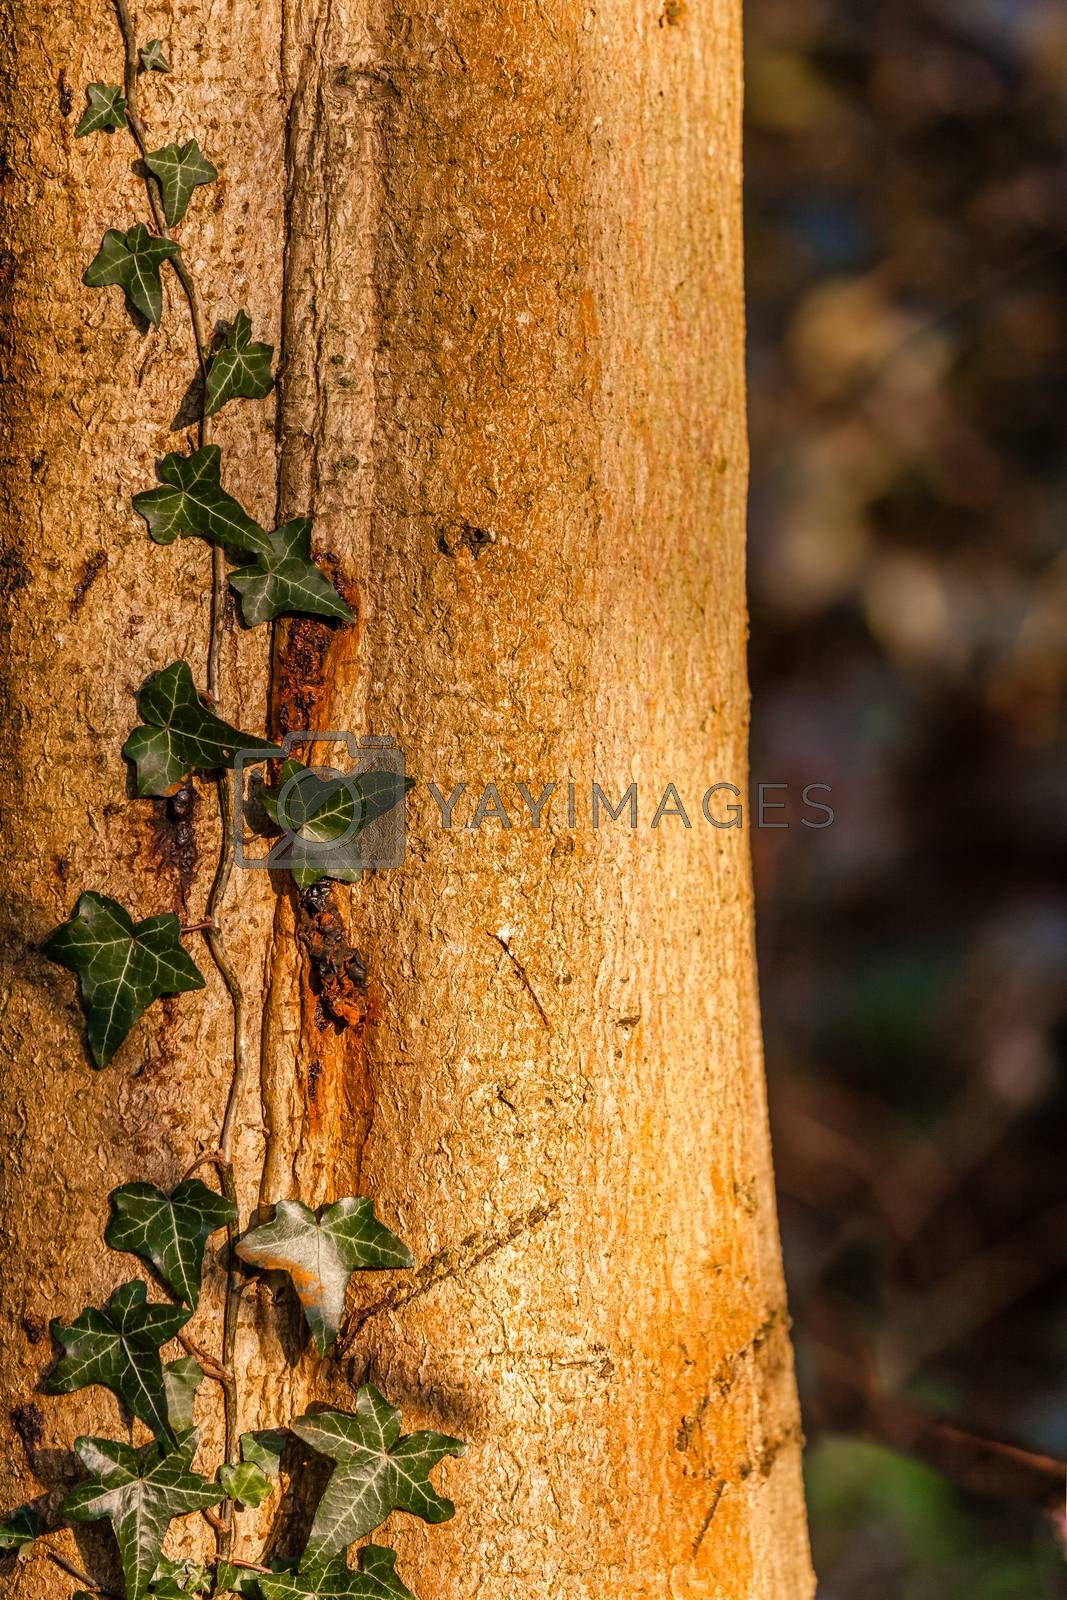 Closeup of green ivy growing on an old tree trunk